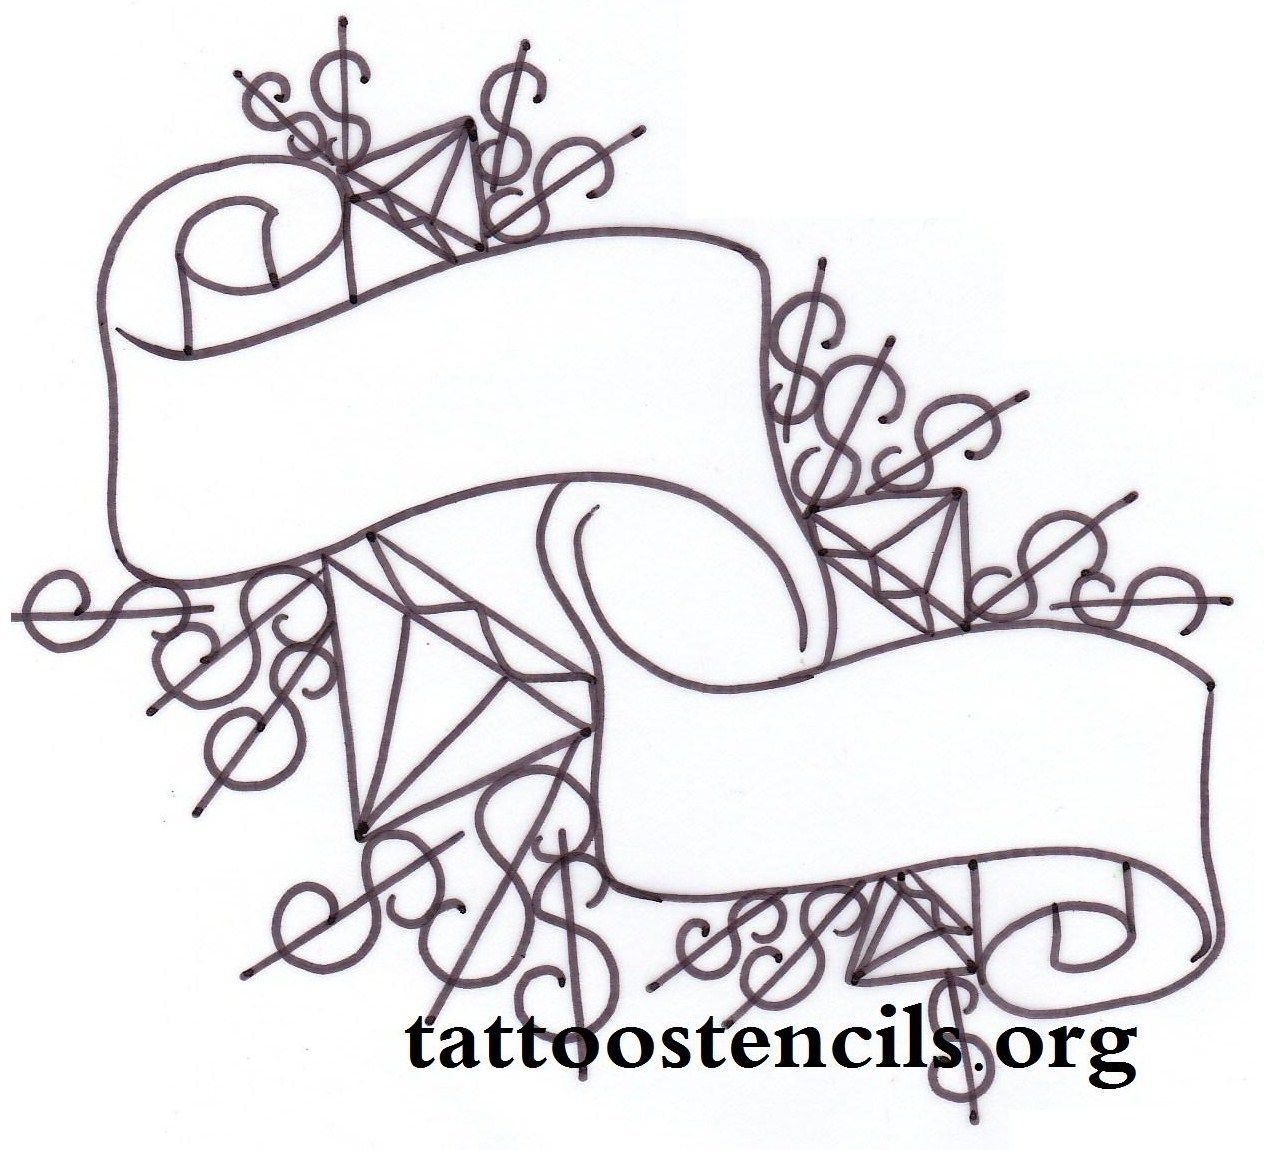 check out this great tattoo websitehttp:tattoos59681r7